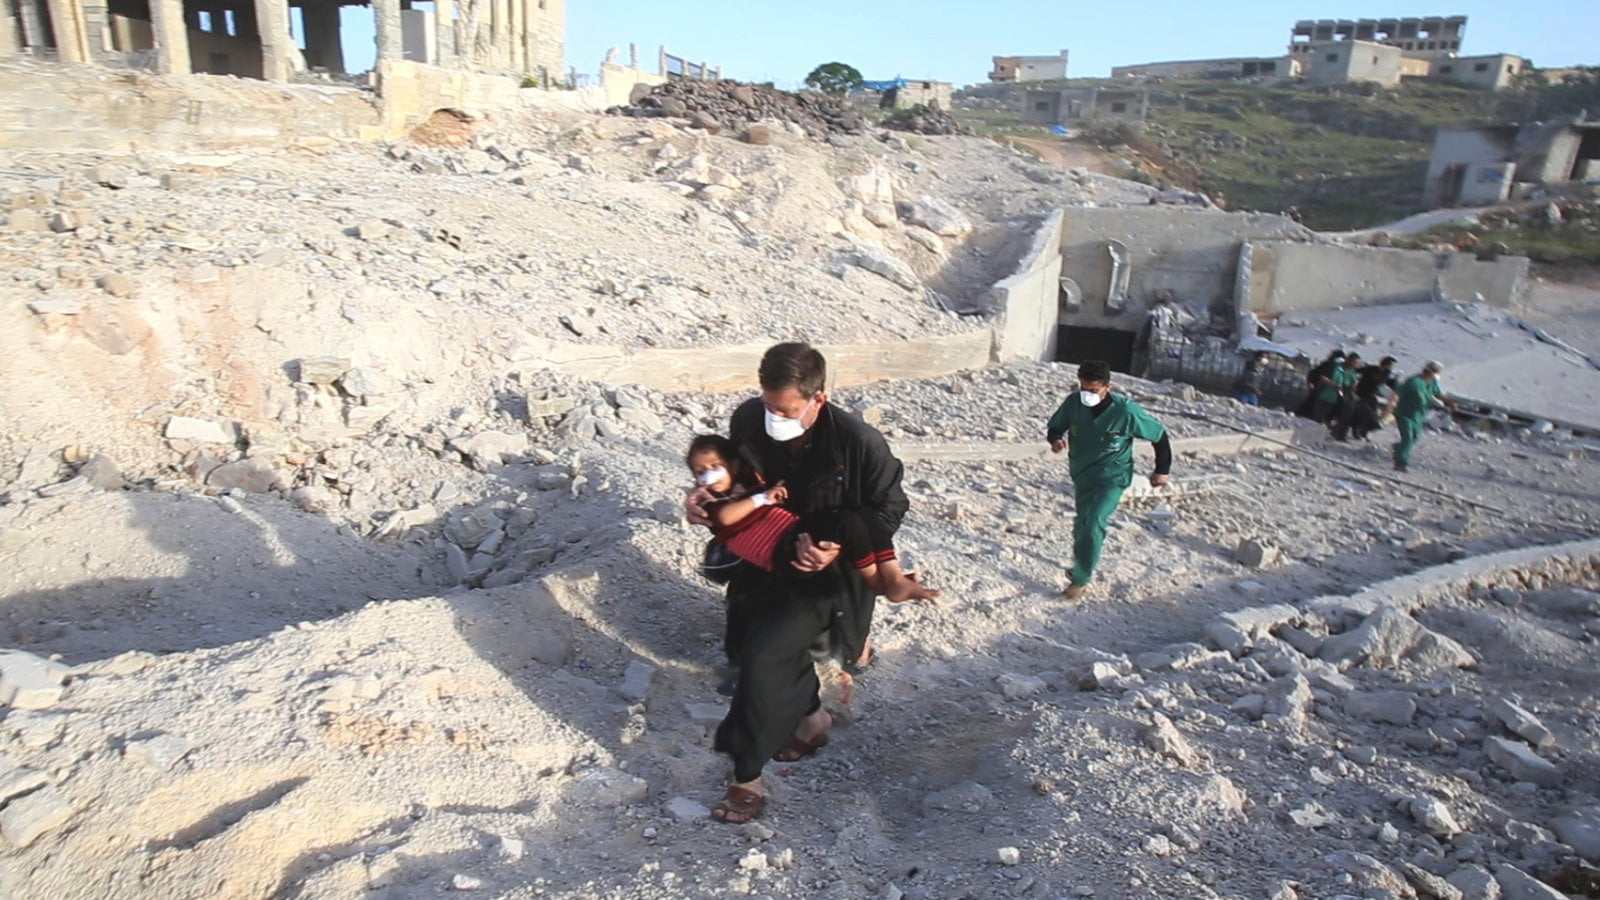 Russian aircraft bombed four Idlib hospitals in less than 12 hours, according to the 'NYT'